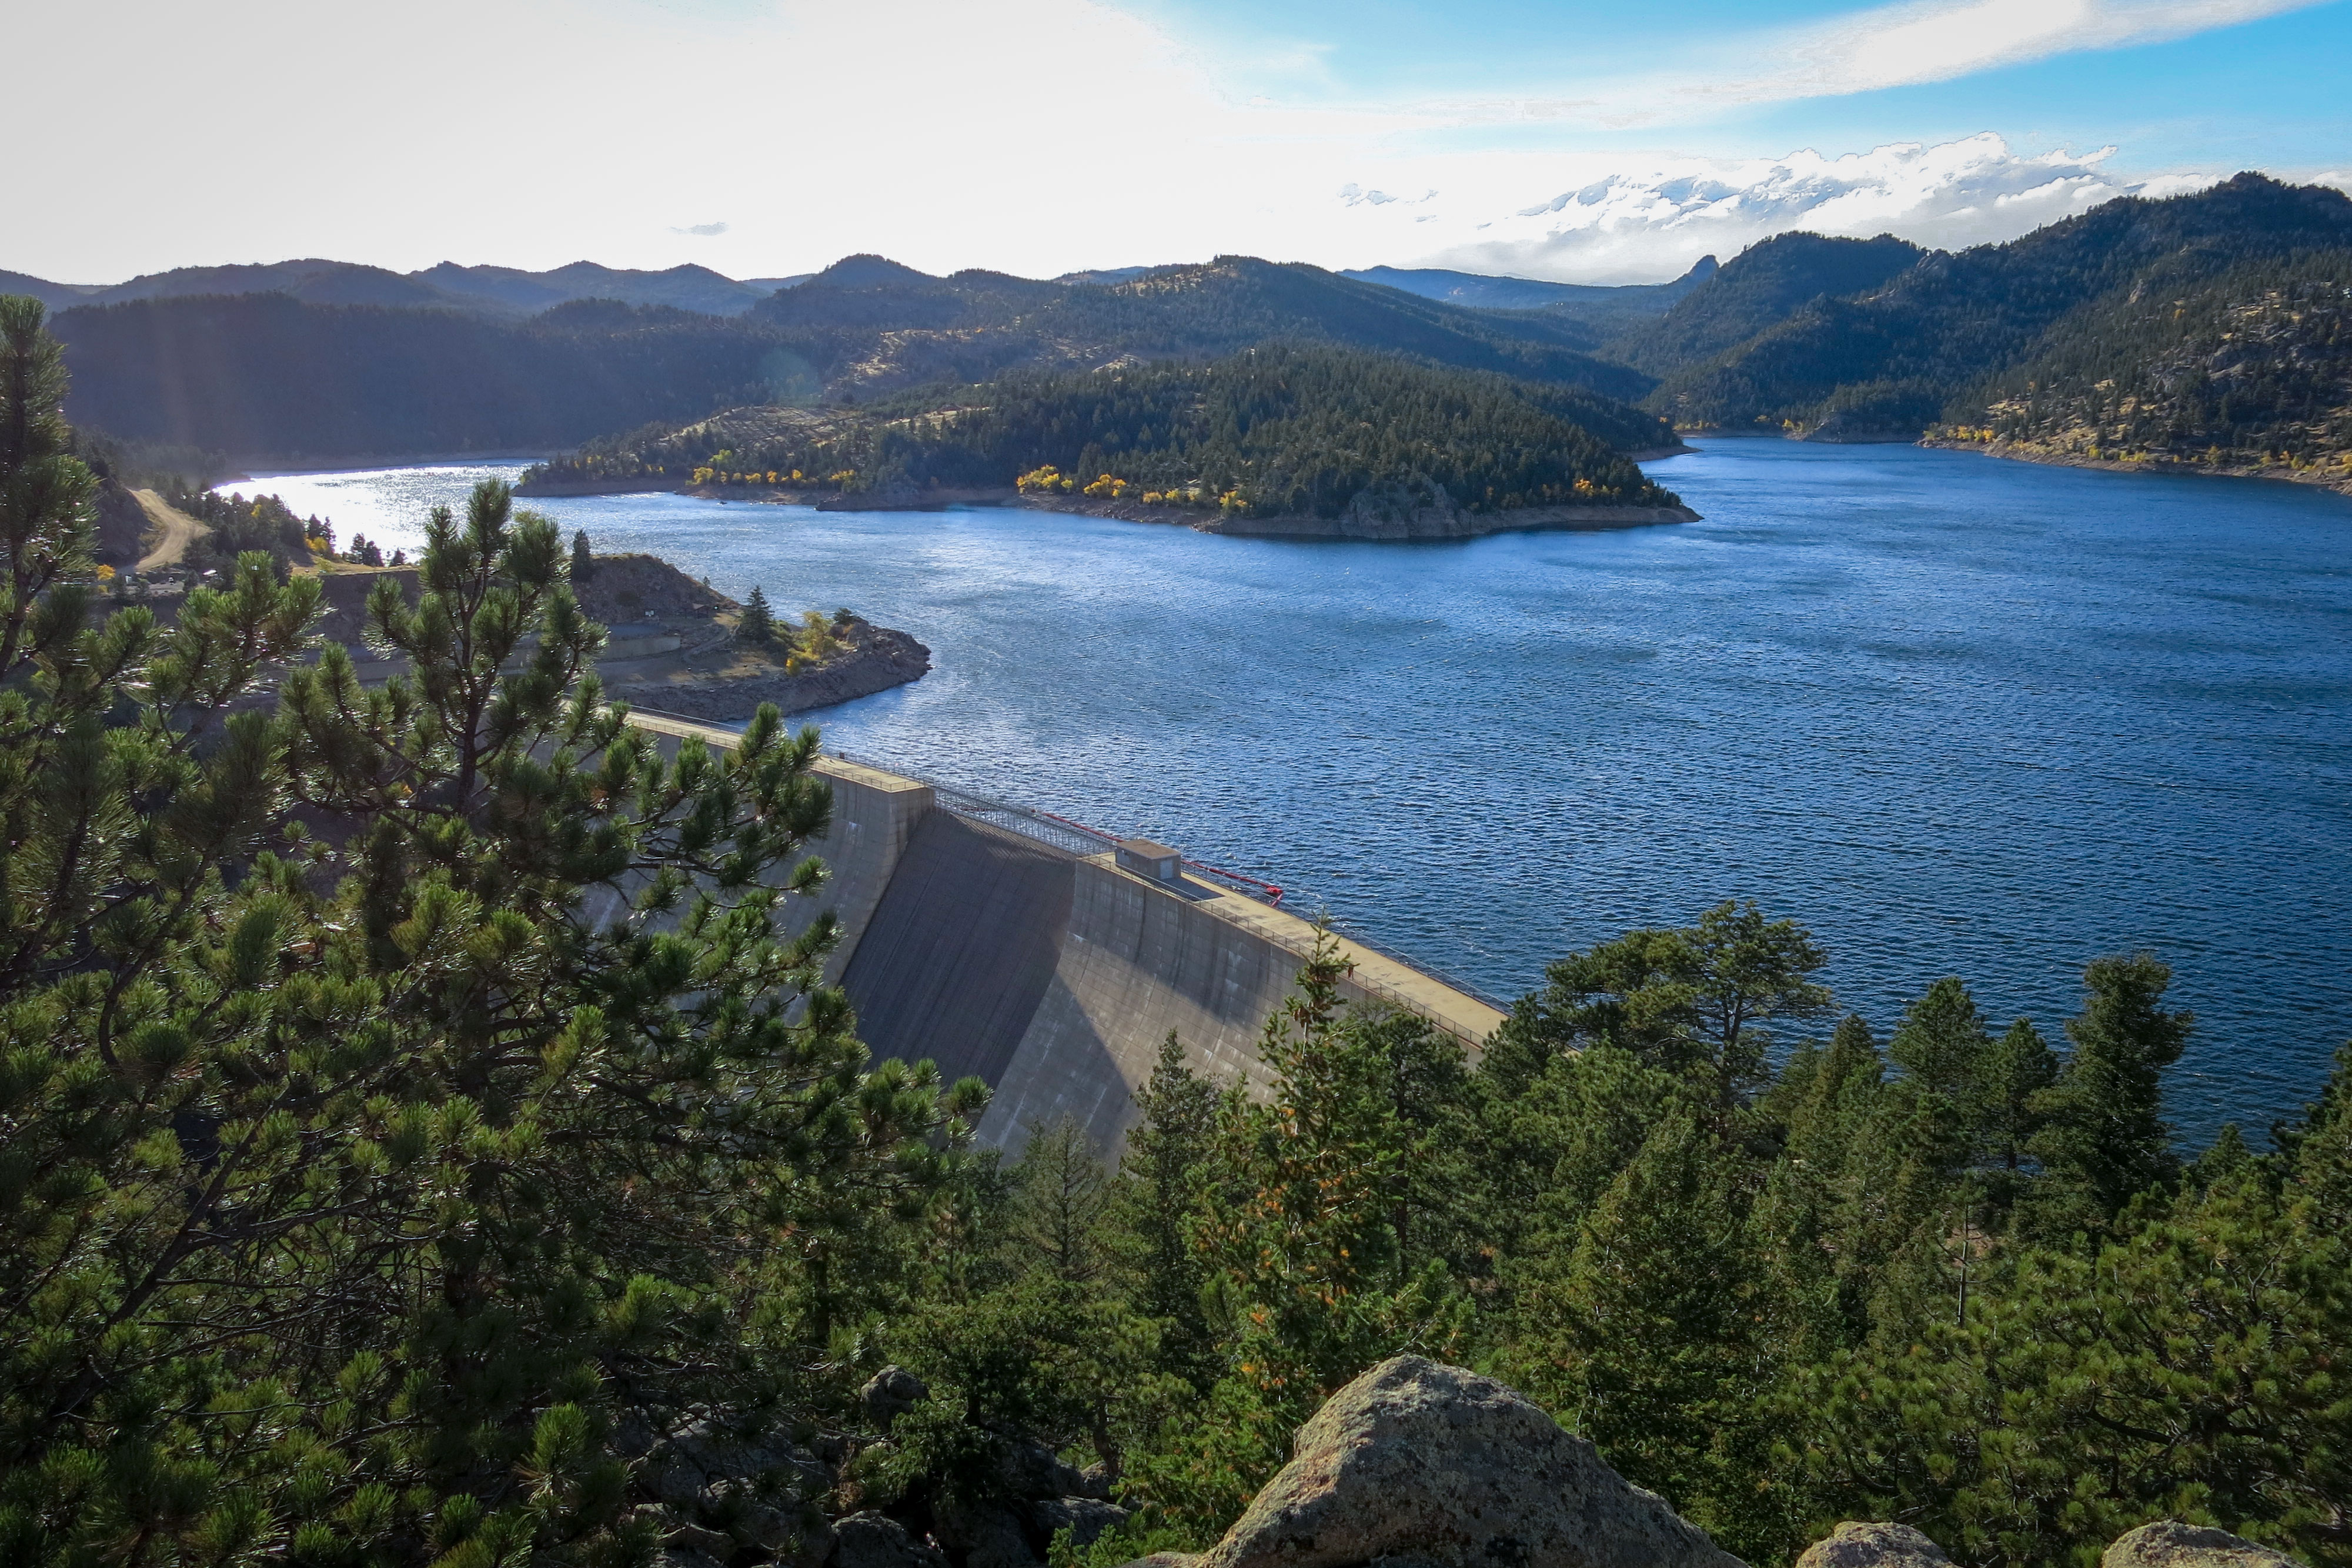 Denver Water wants to raise the dam at Gross Reservoir 131 feet to increase the storage capacity for more water in wet years.